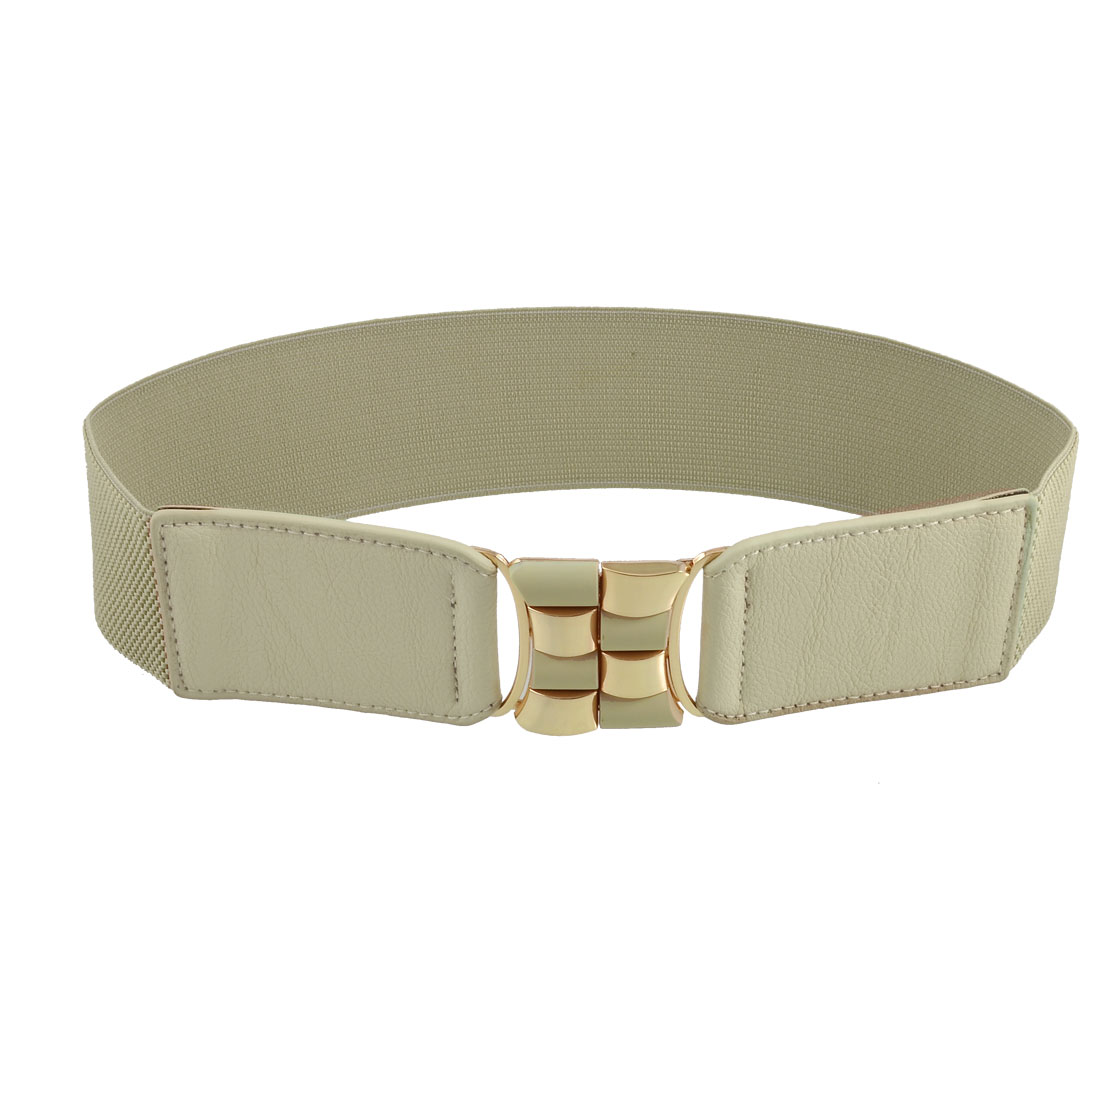 Women Gold Tone Checked Buckle Beige Faux Leather Nylon Textured Cinch Belt